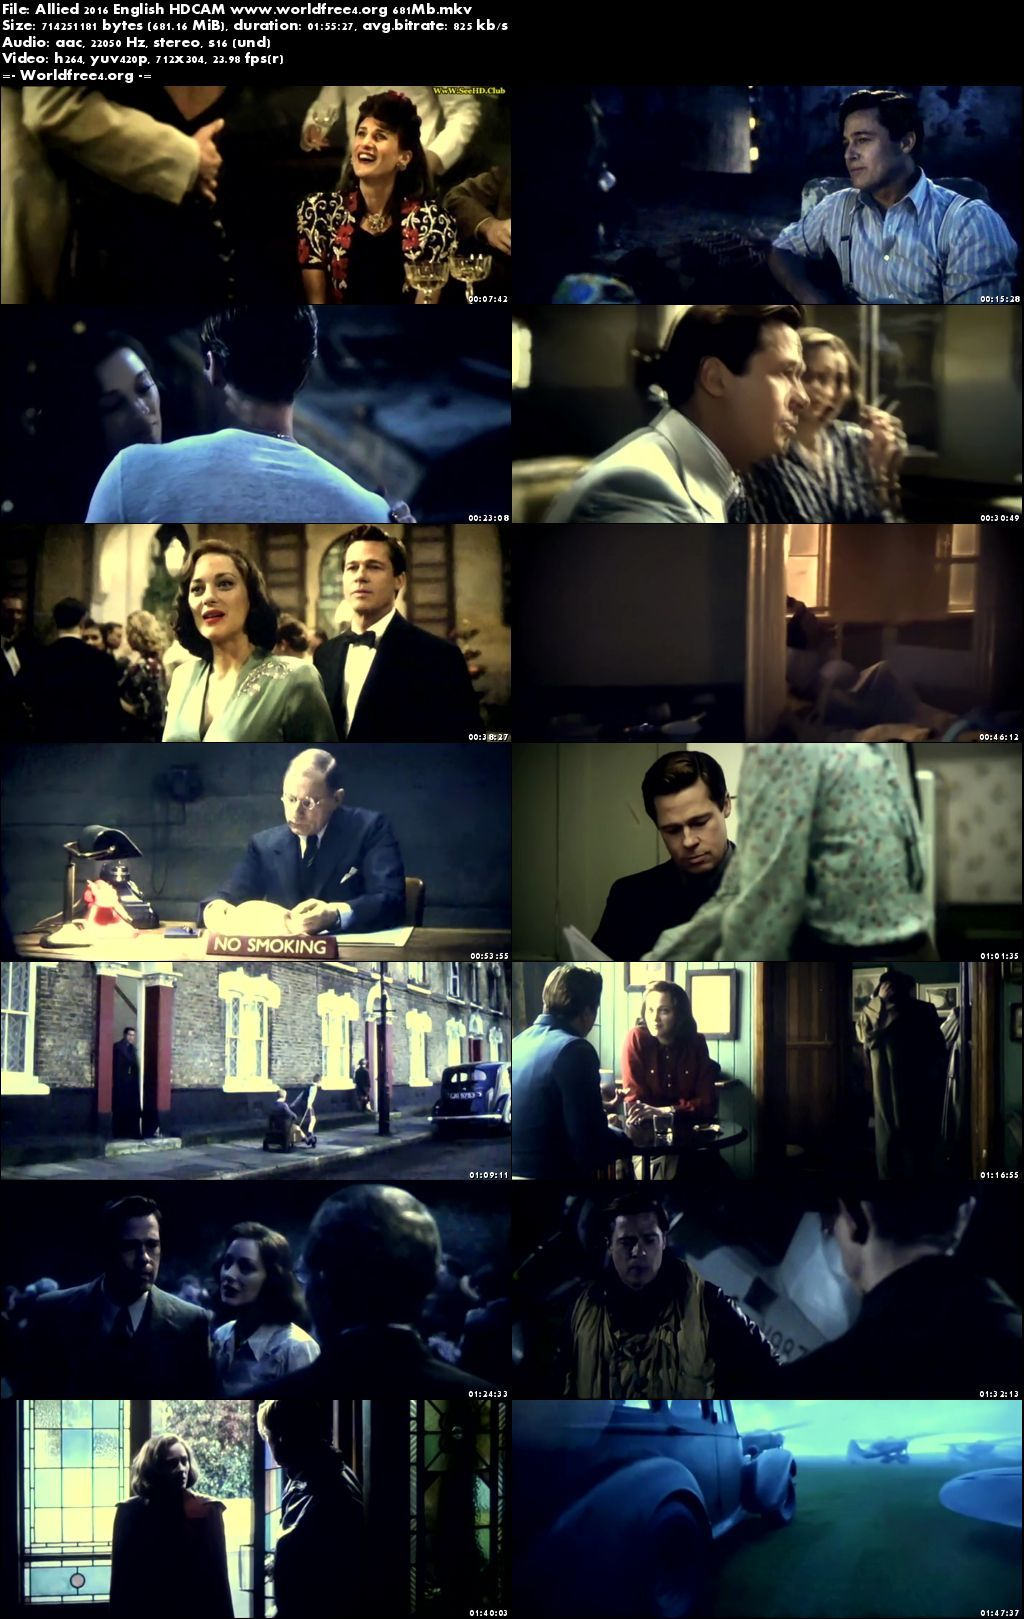 Resumeable Single Free Download Links For Allied 2016 Full Movie English 350Mb 480p HDCAM Watch Online Free at worldfree4.org